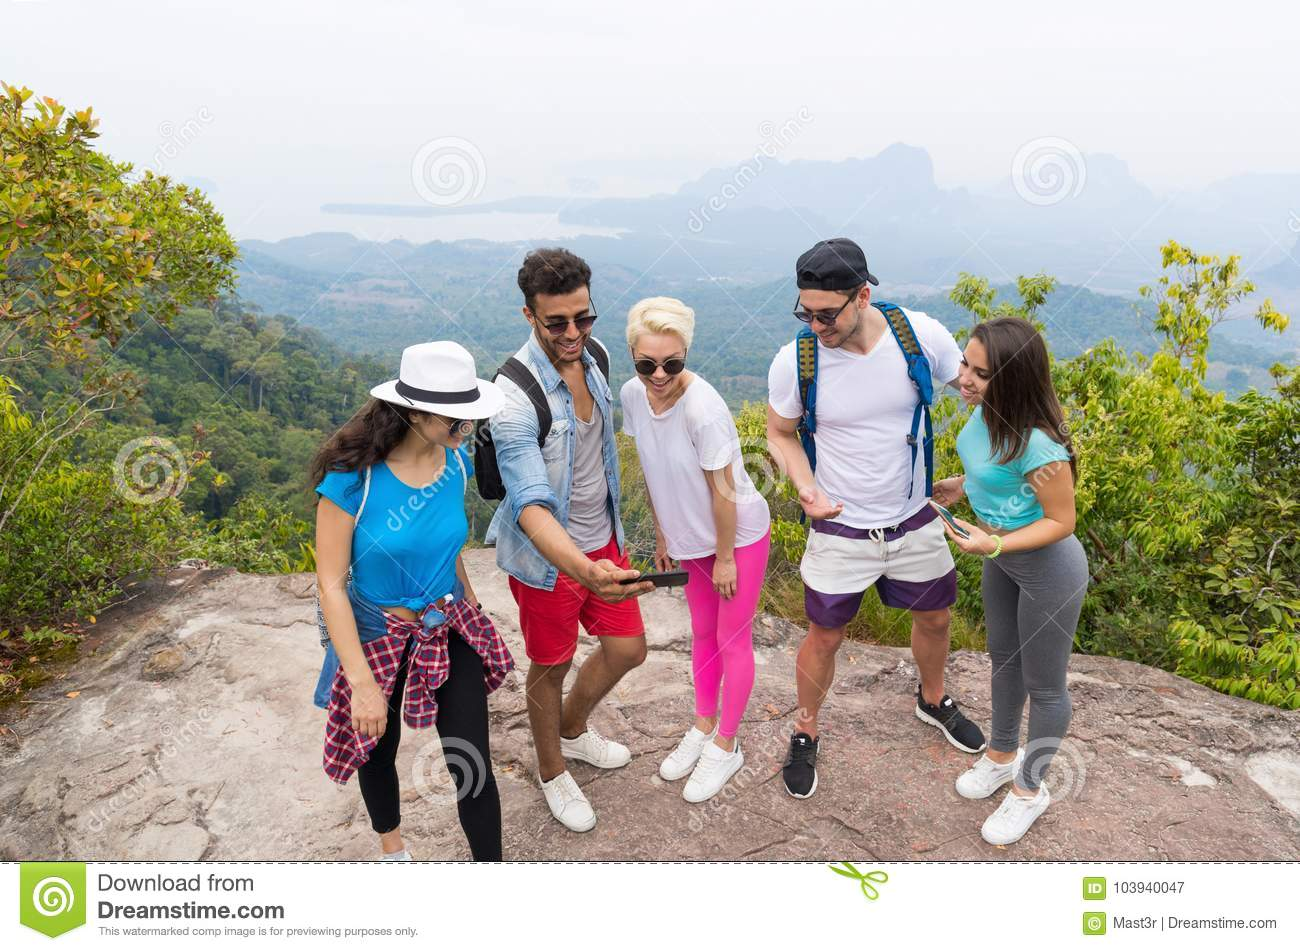 Tourist Group Watch Photos On Cell Smart Phones, People With Backpack Over Landscape From Mountain Top